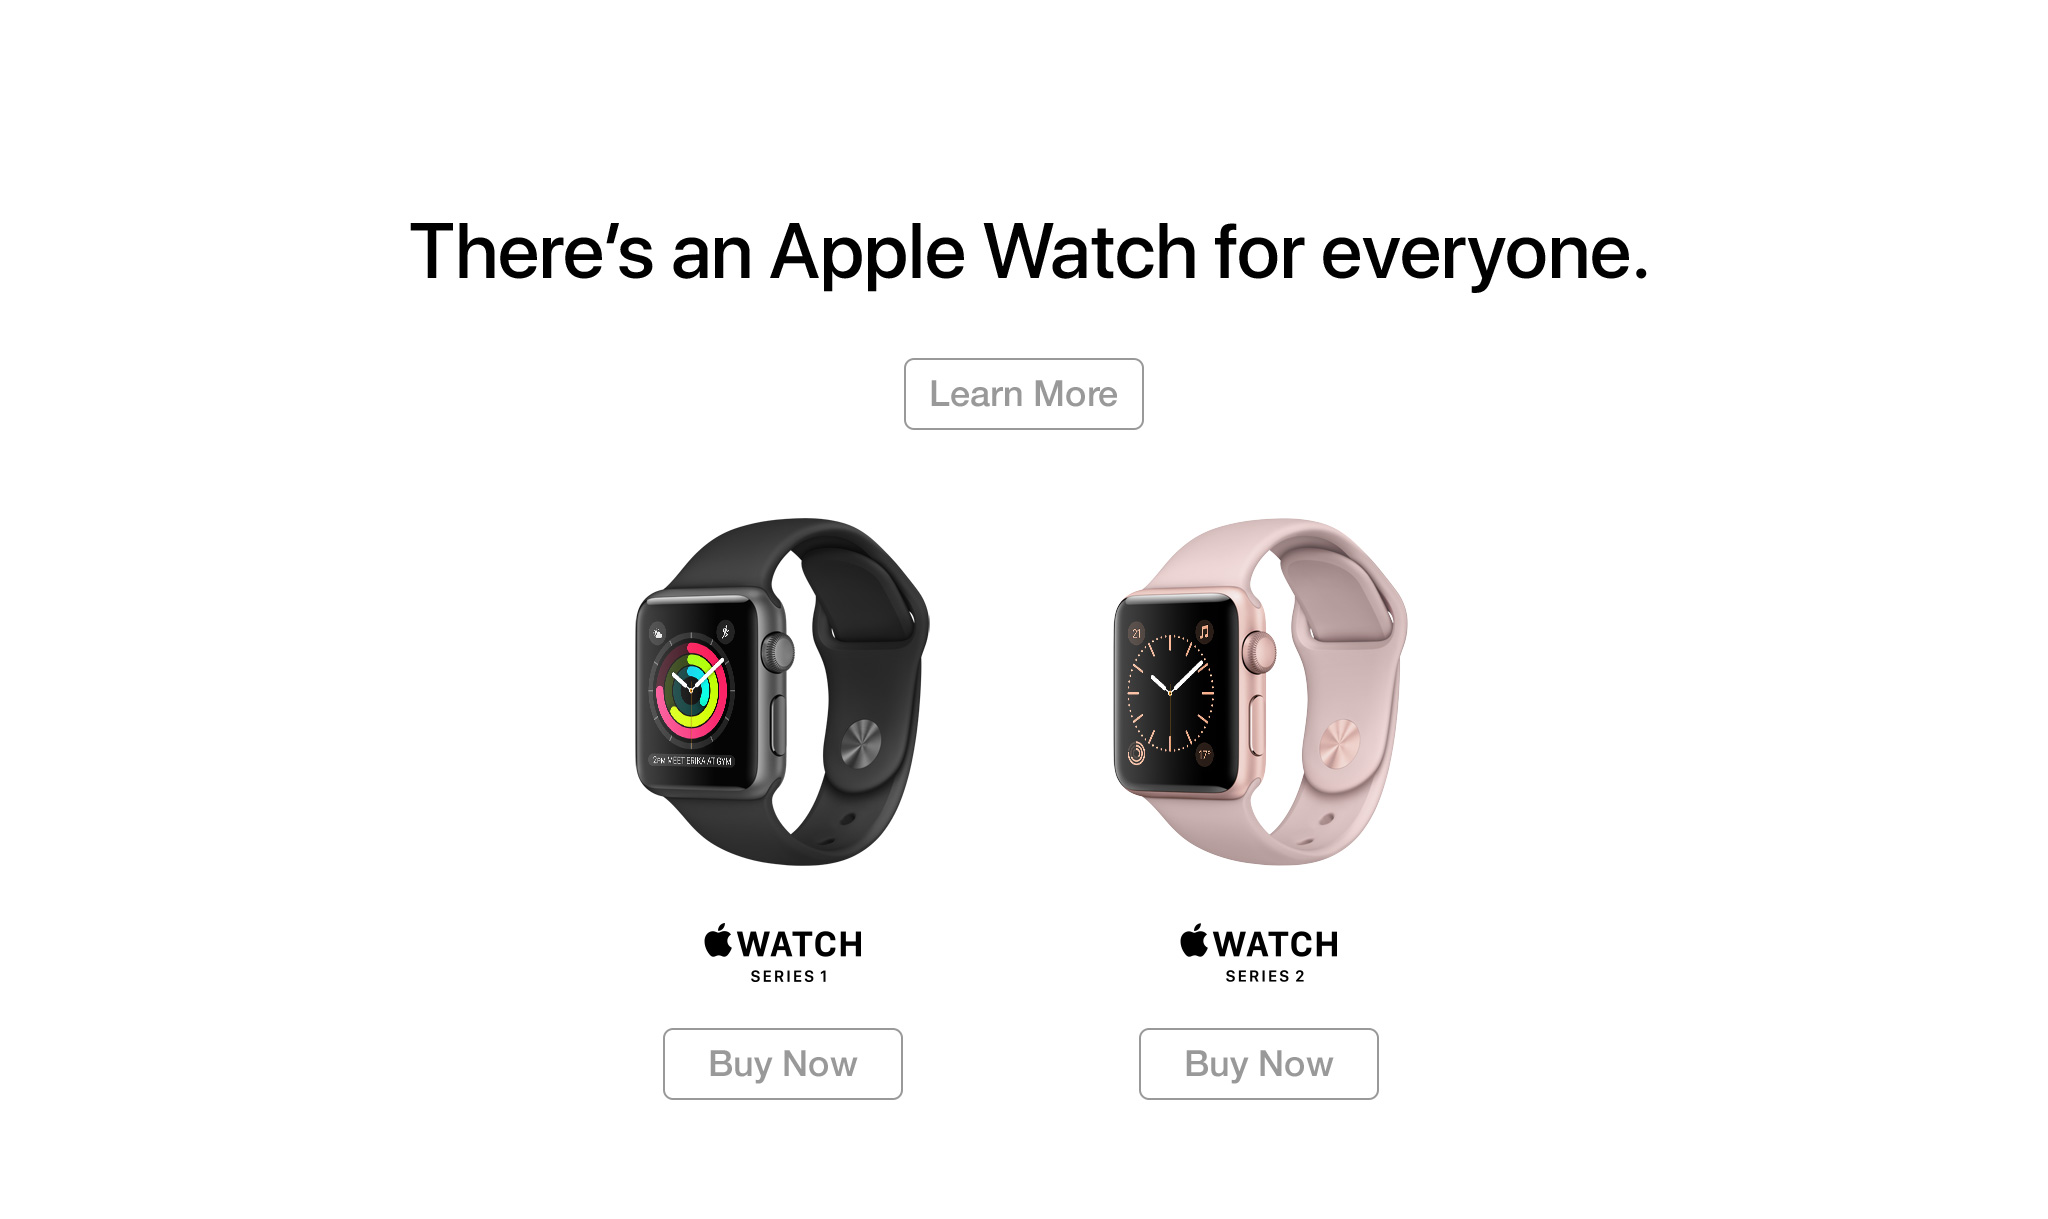 Apple Watch buy now